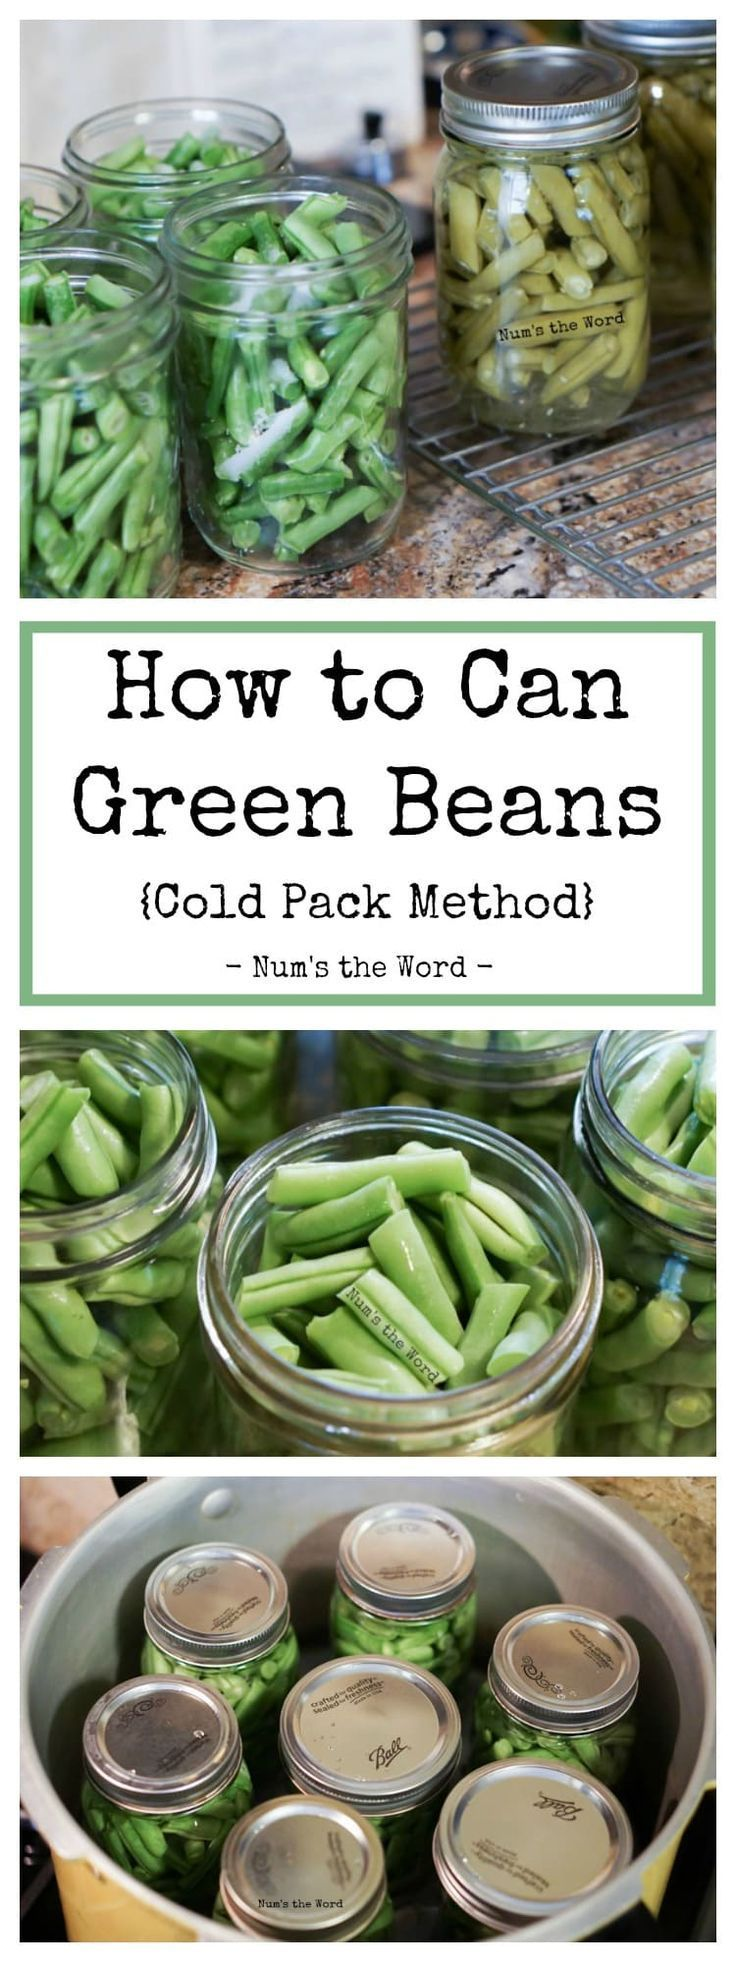 This step by step with photos guide on How to Can Green Beans - the wet pack method, is perfect for anyone new to canning. Simple, clear steps to canning garden fresh green beans to last all winter long!